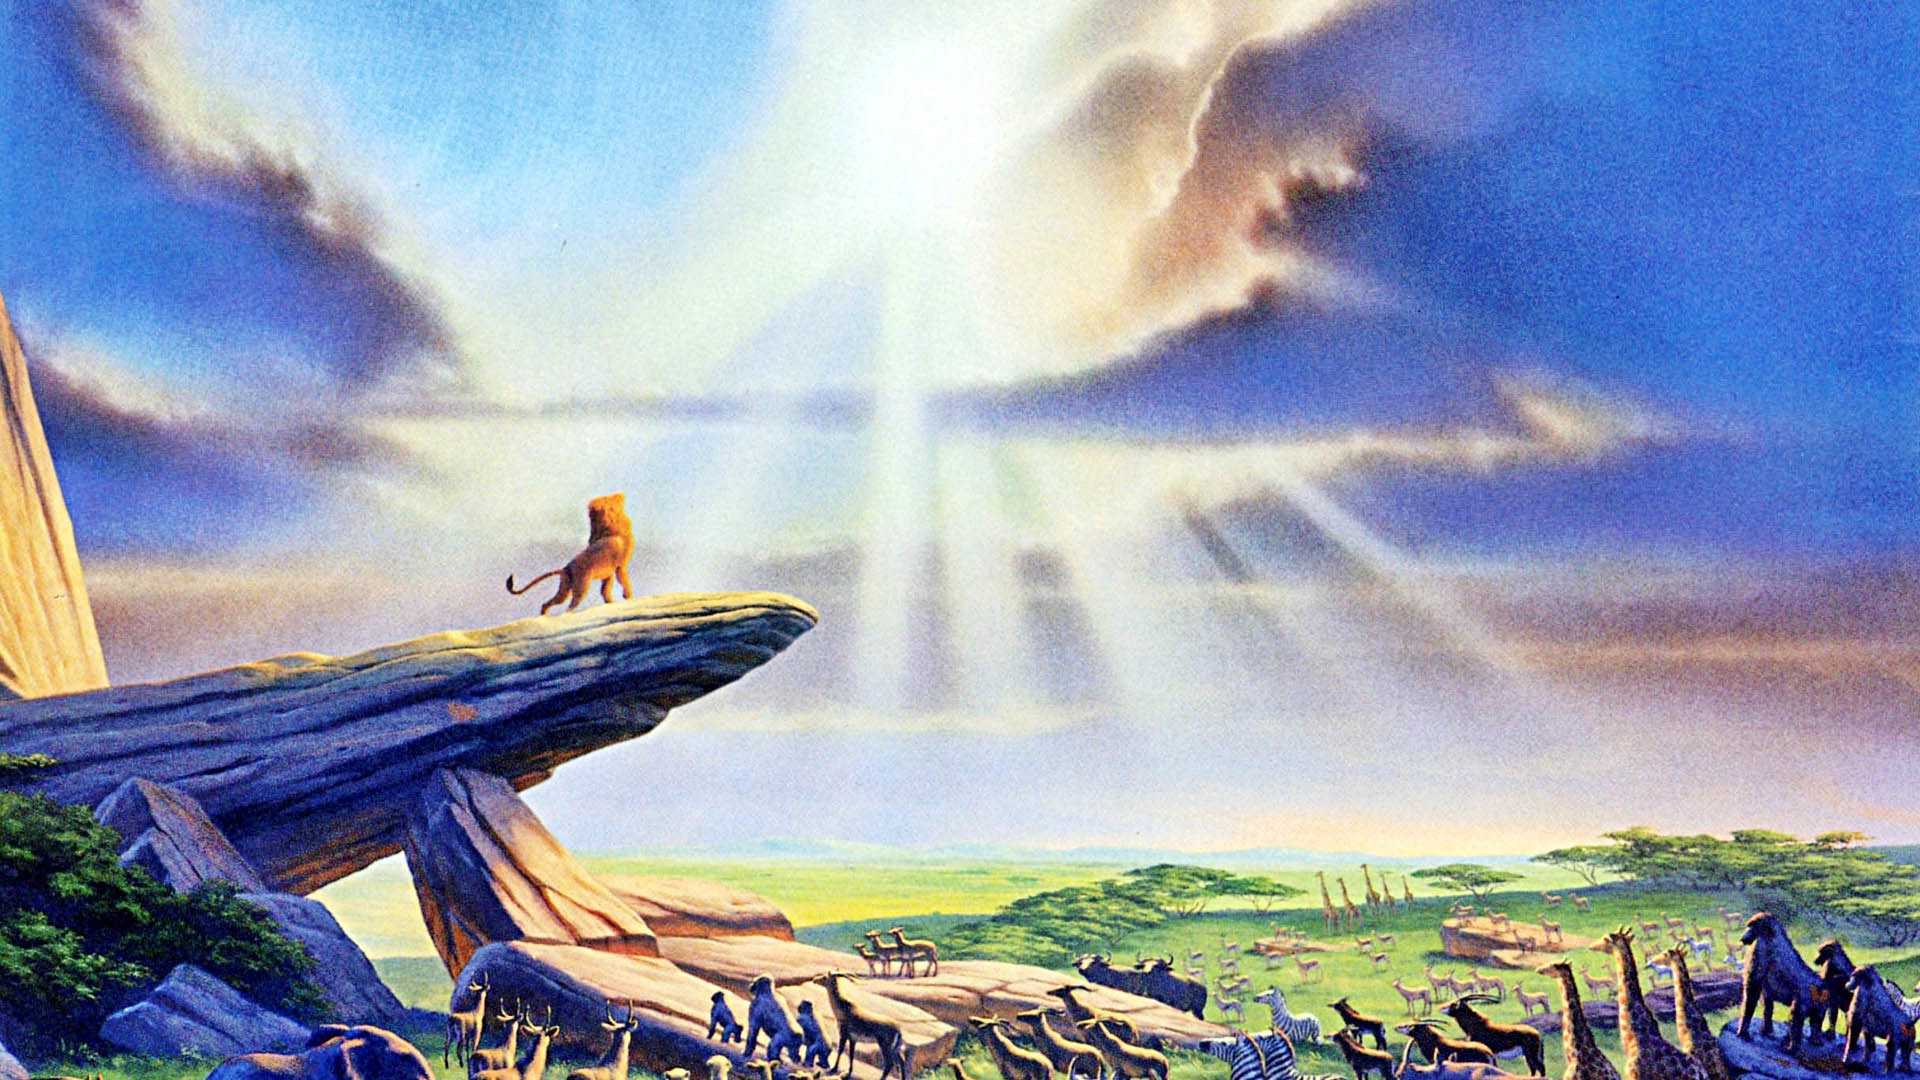 Lion screensavers and wallpaper 63 images - Lion king wallpaper ...